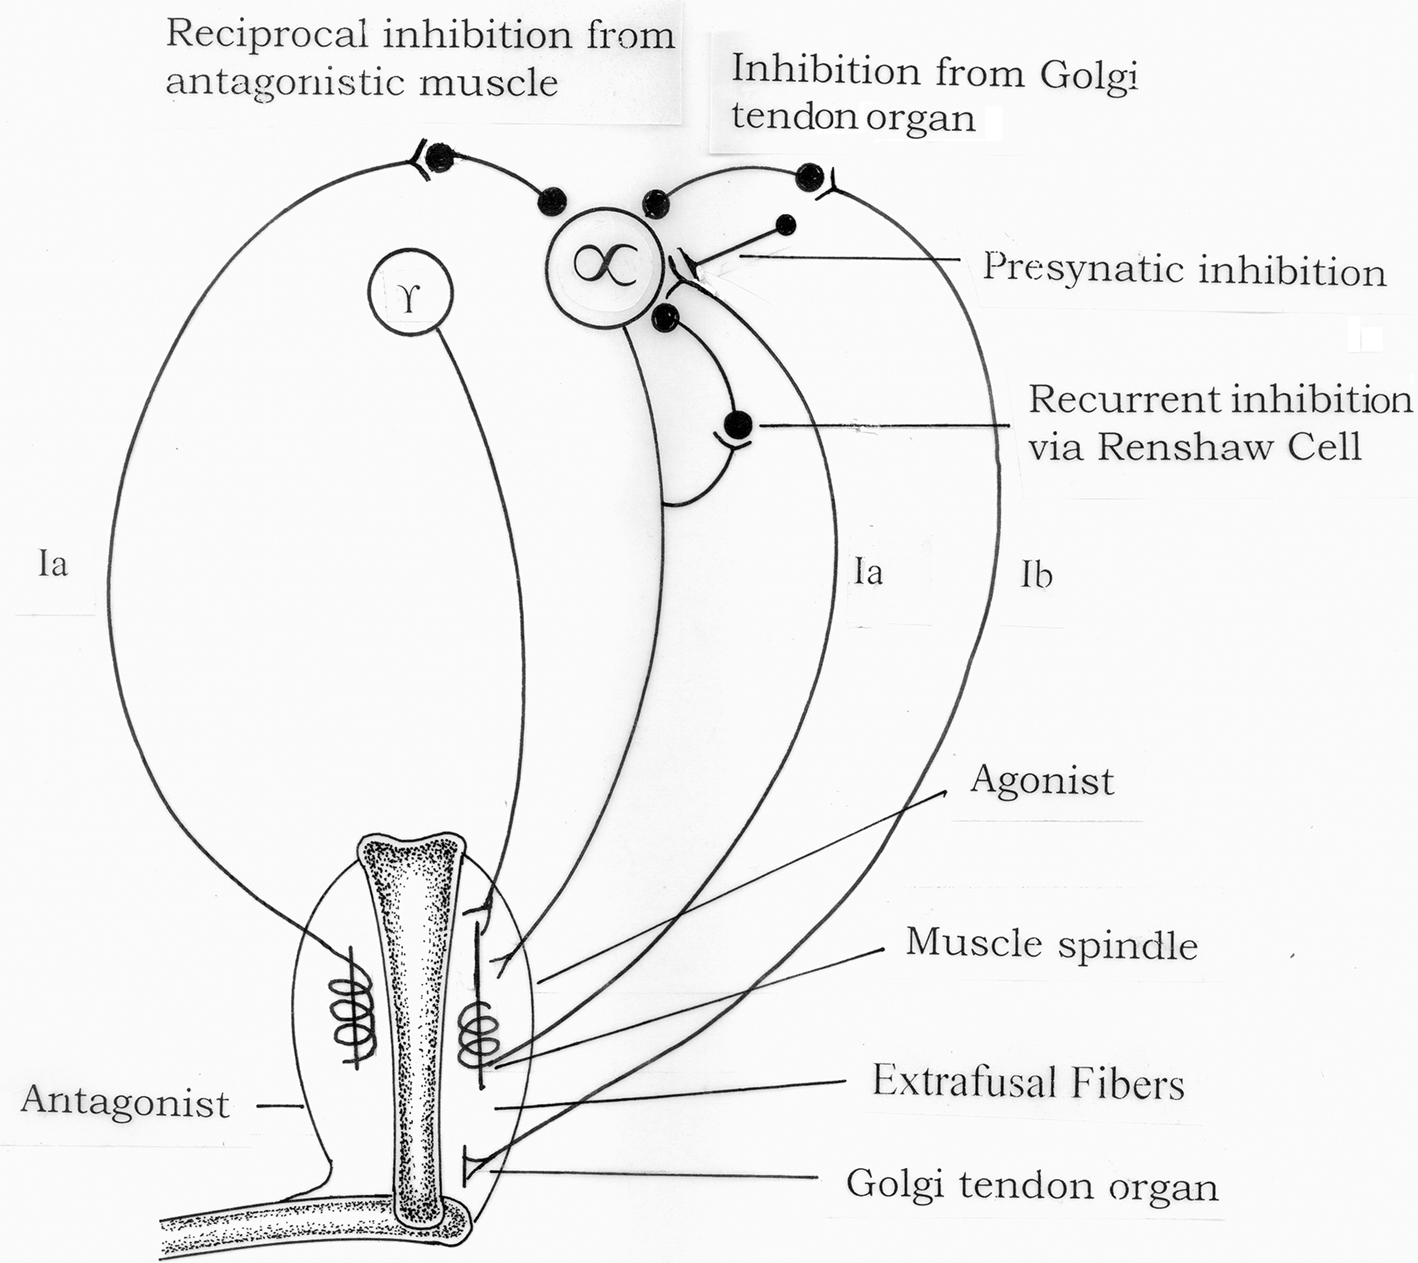 mechanisms of motor development Chapter 8 motor behavior - the influence of growth and maturation on motor performance - developmental patterns of - proposed memory mechanisms that allow.